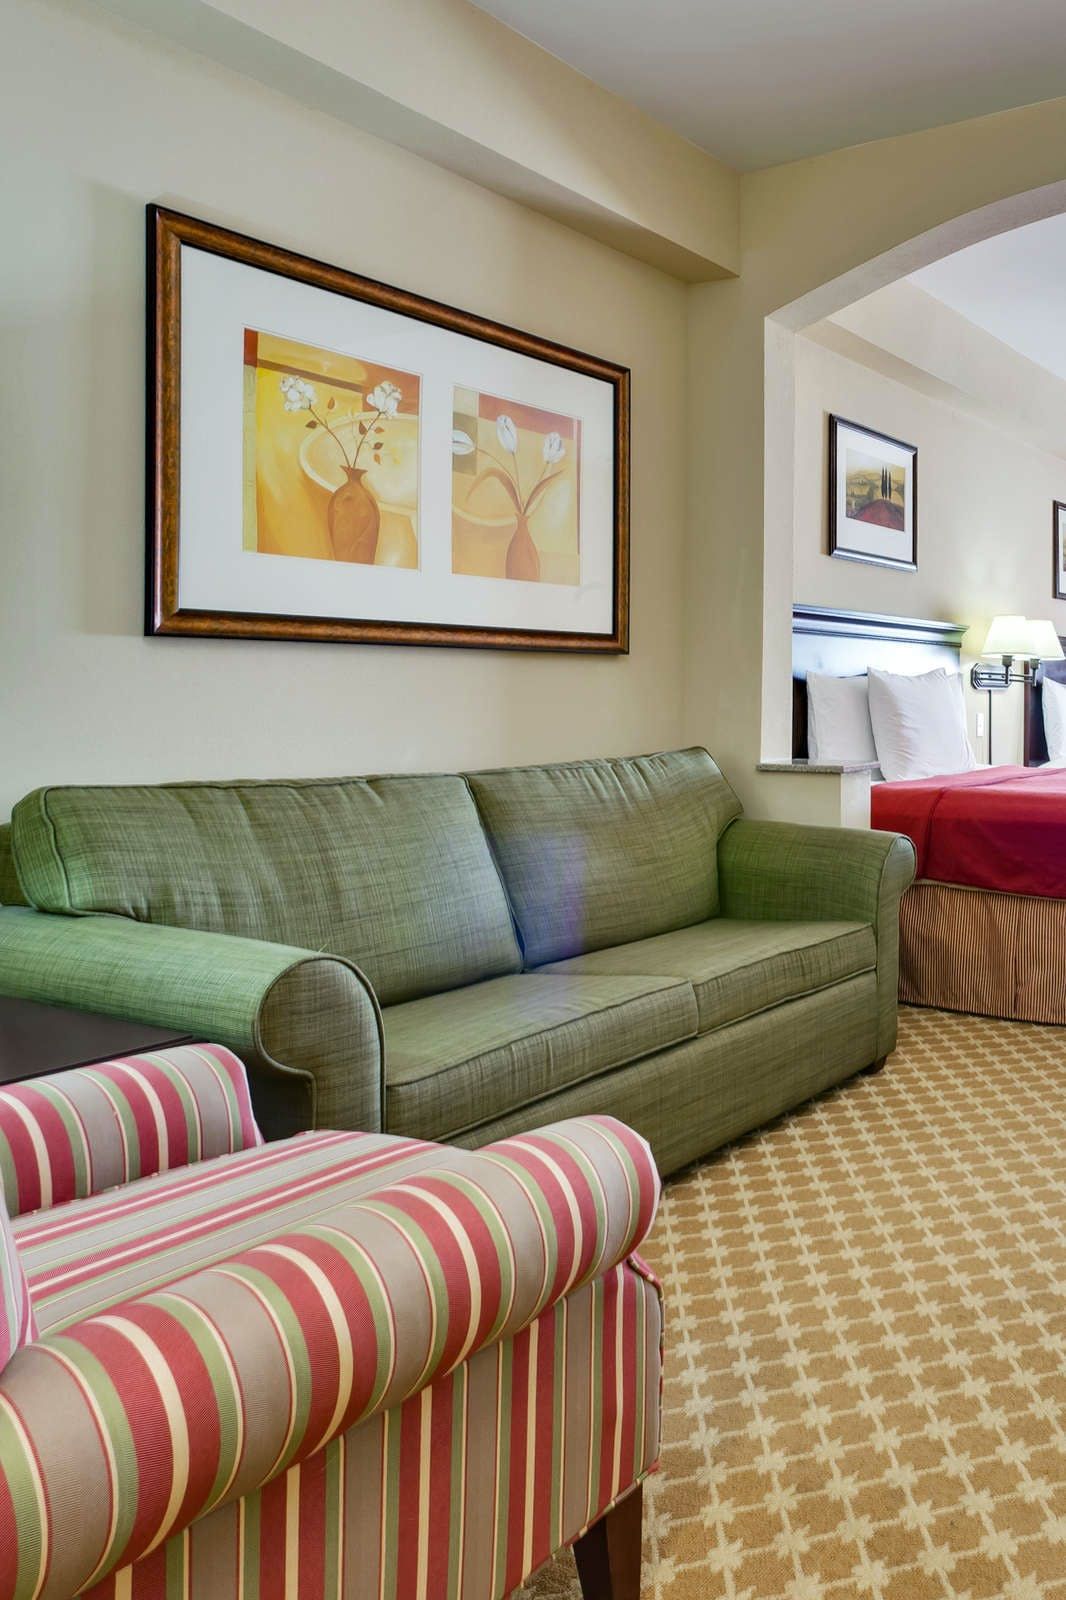 Country Inn & Suites by Radisson, Absecon (Atlantic City) Galloway, NJ